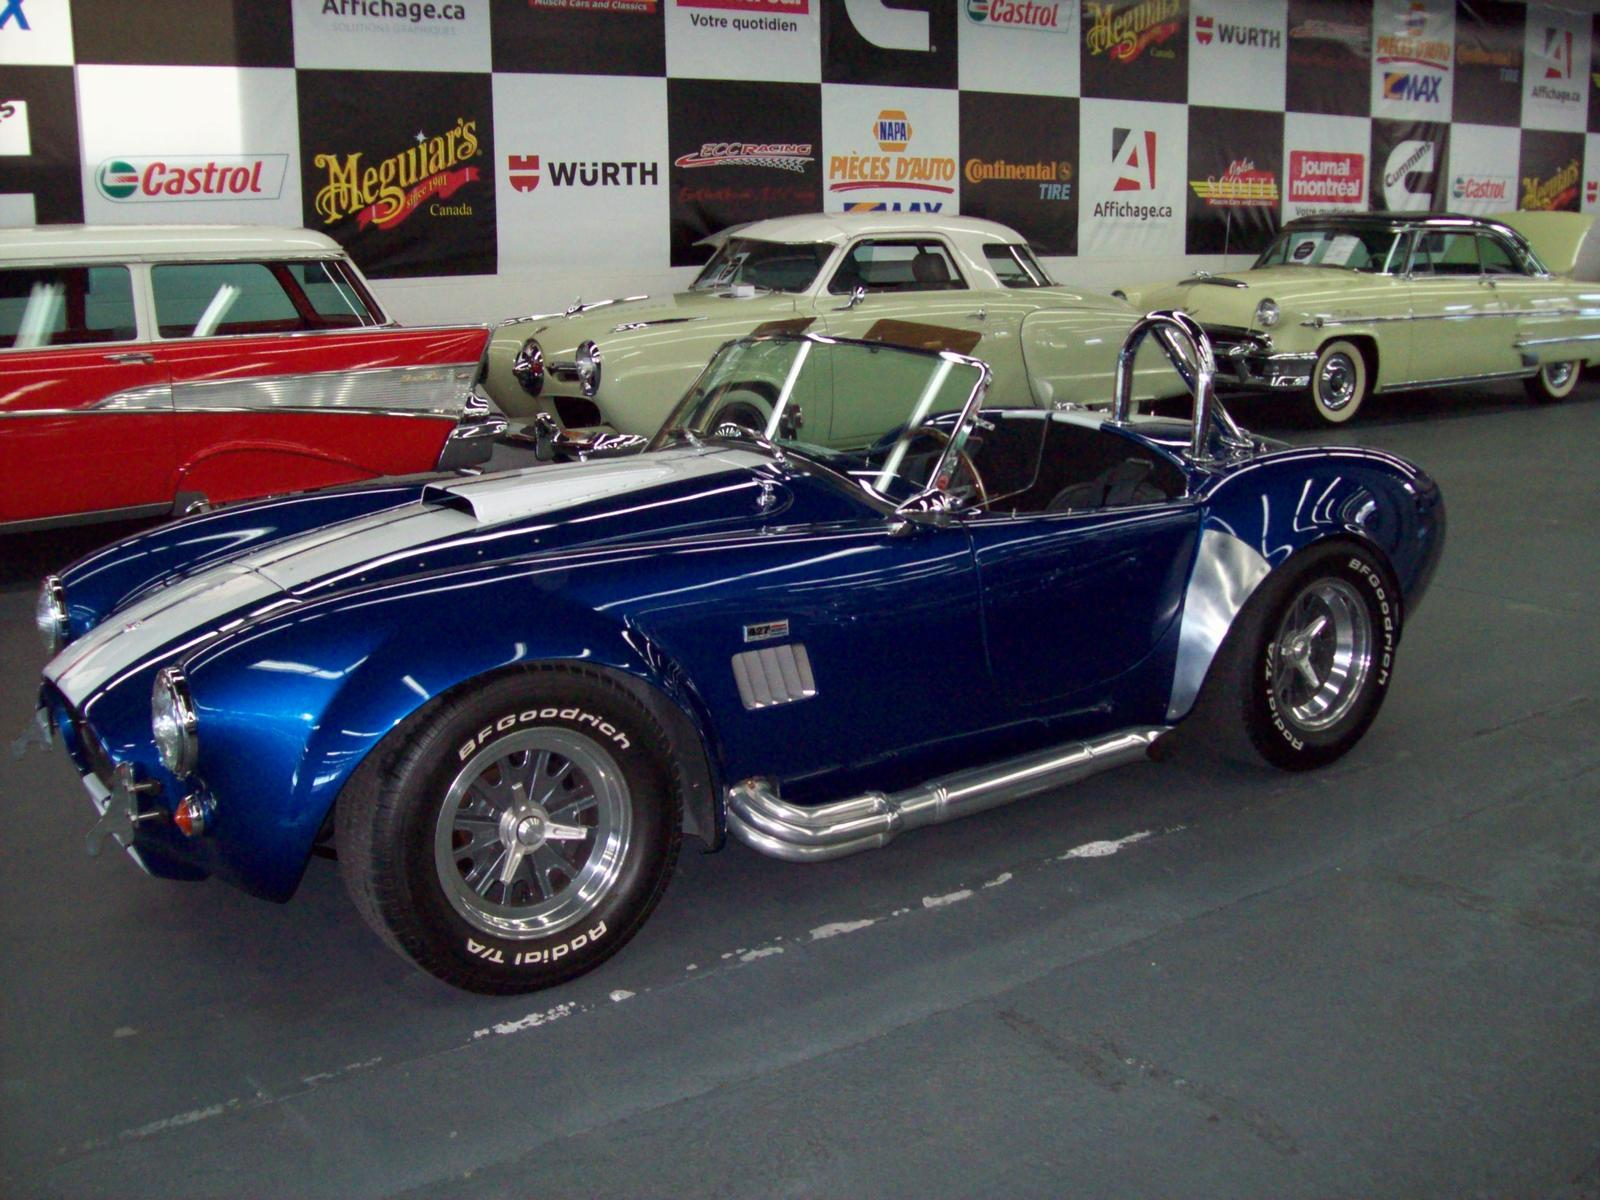 Used 1966 Ac Cobra Replica For Sale In Saint Leonard John Scotti